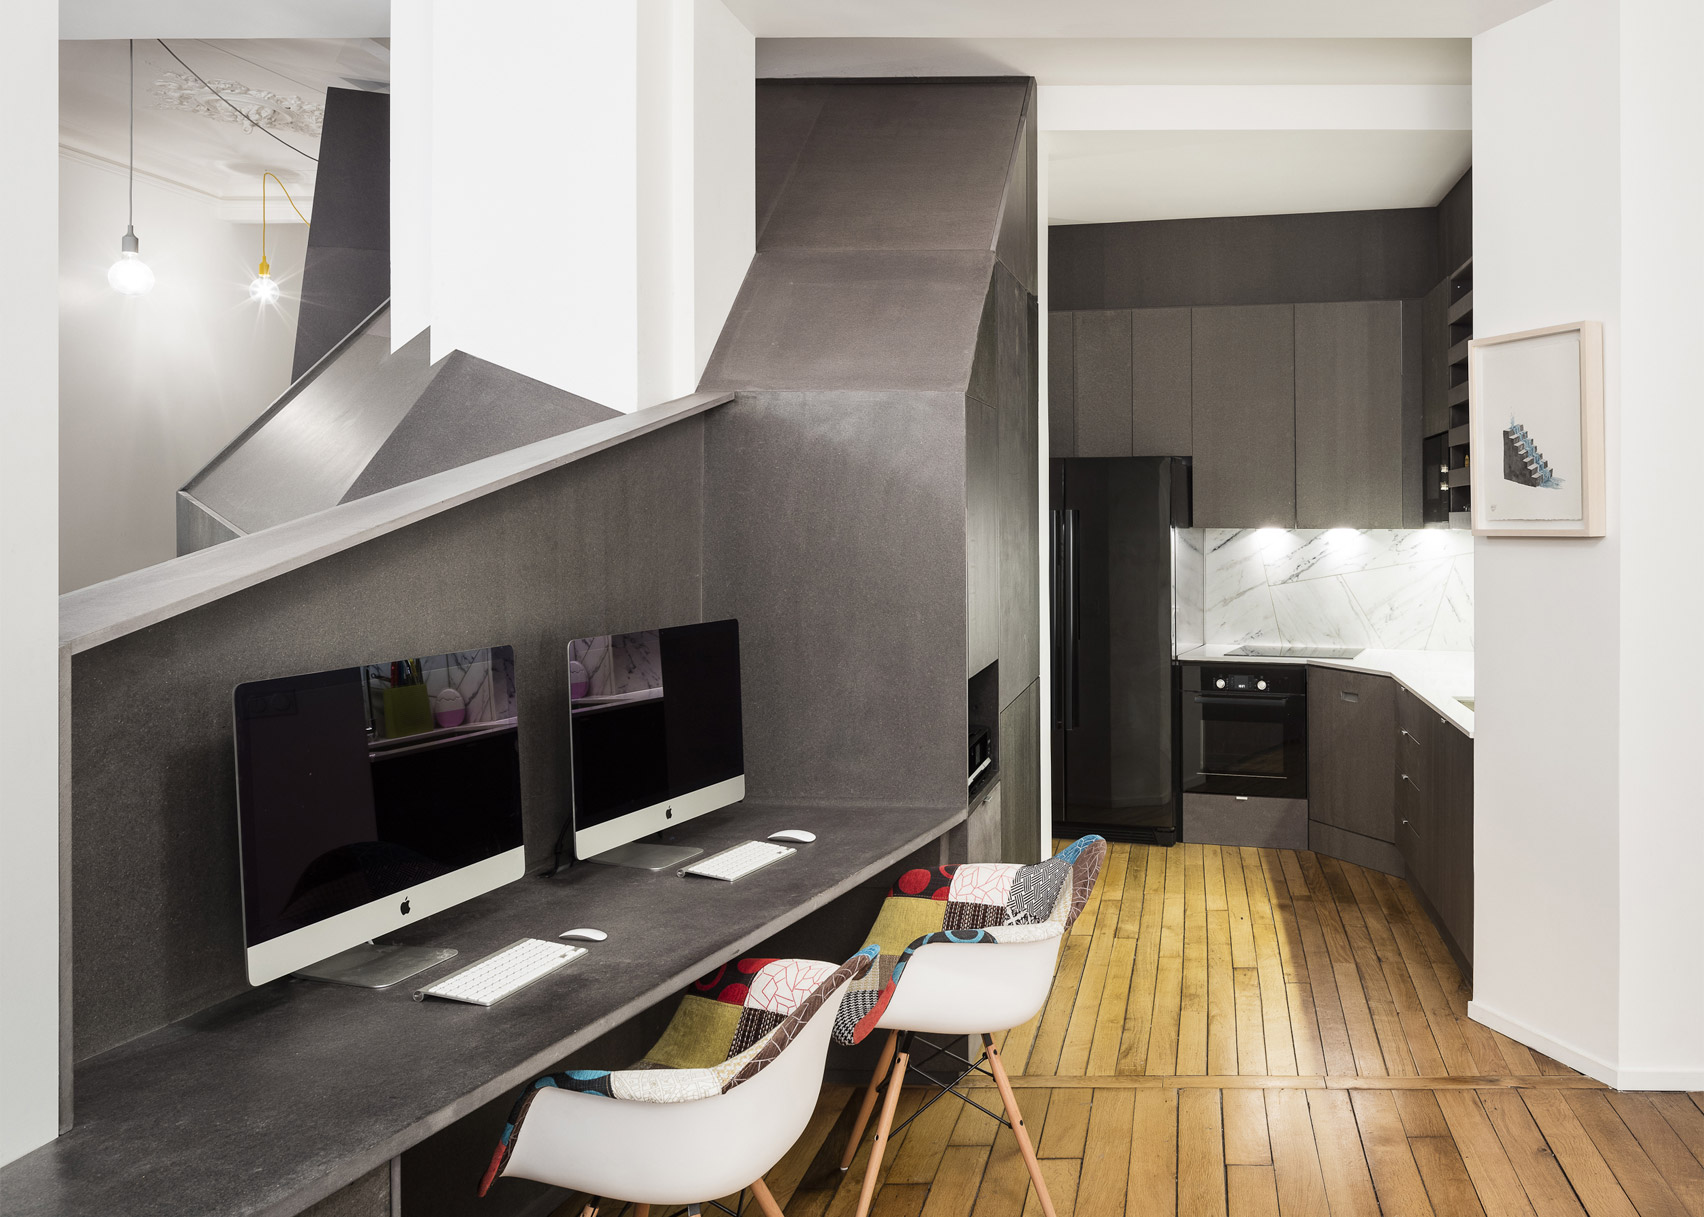 apartment-xiv-studio-razavi-interiors-paris-france-renovation_dezeen_1704_ss_0